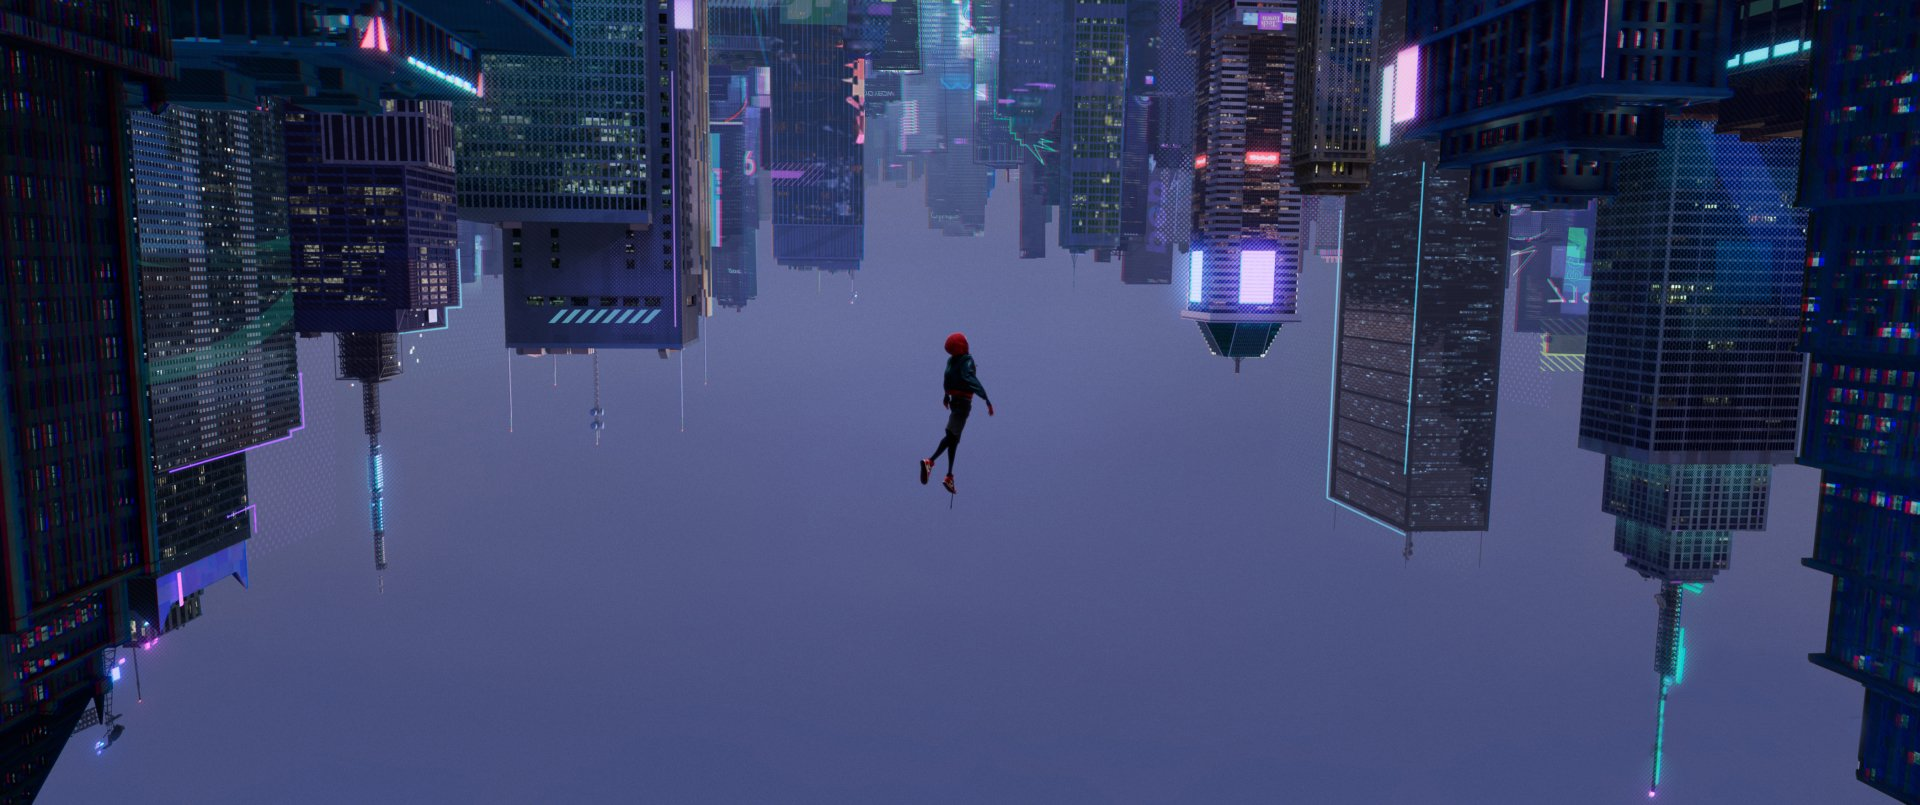 Falling In Reverse Wallpaper 1366x768 230 Spider Man Into The Spider Verse Hd Wallpapers